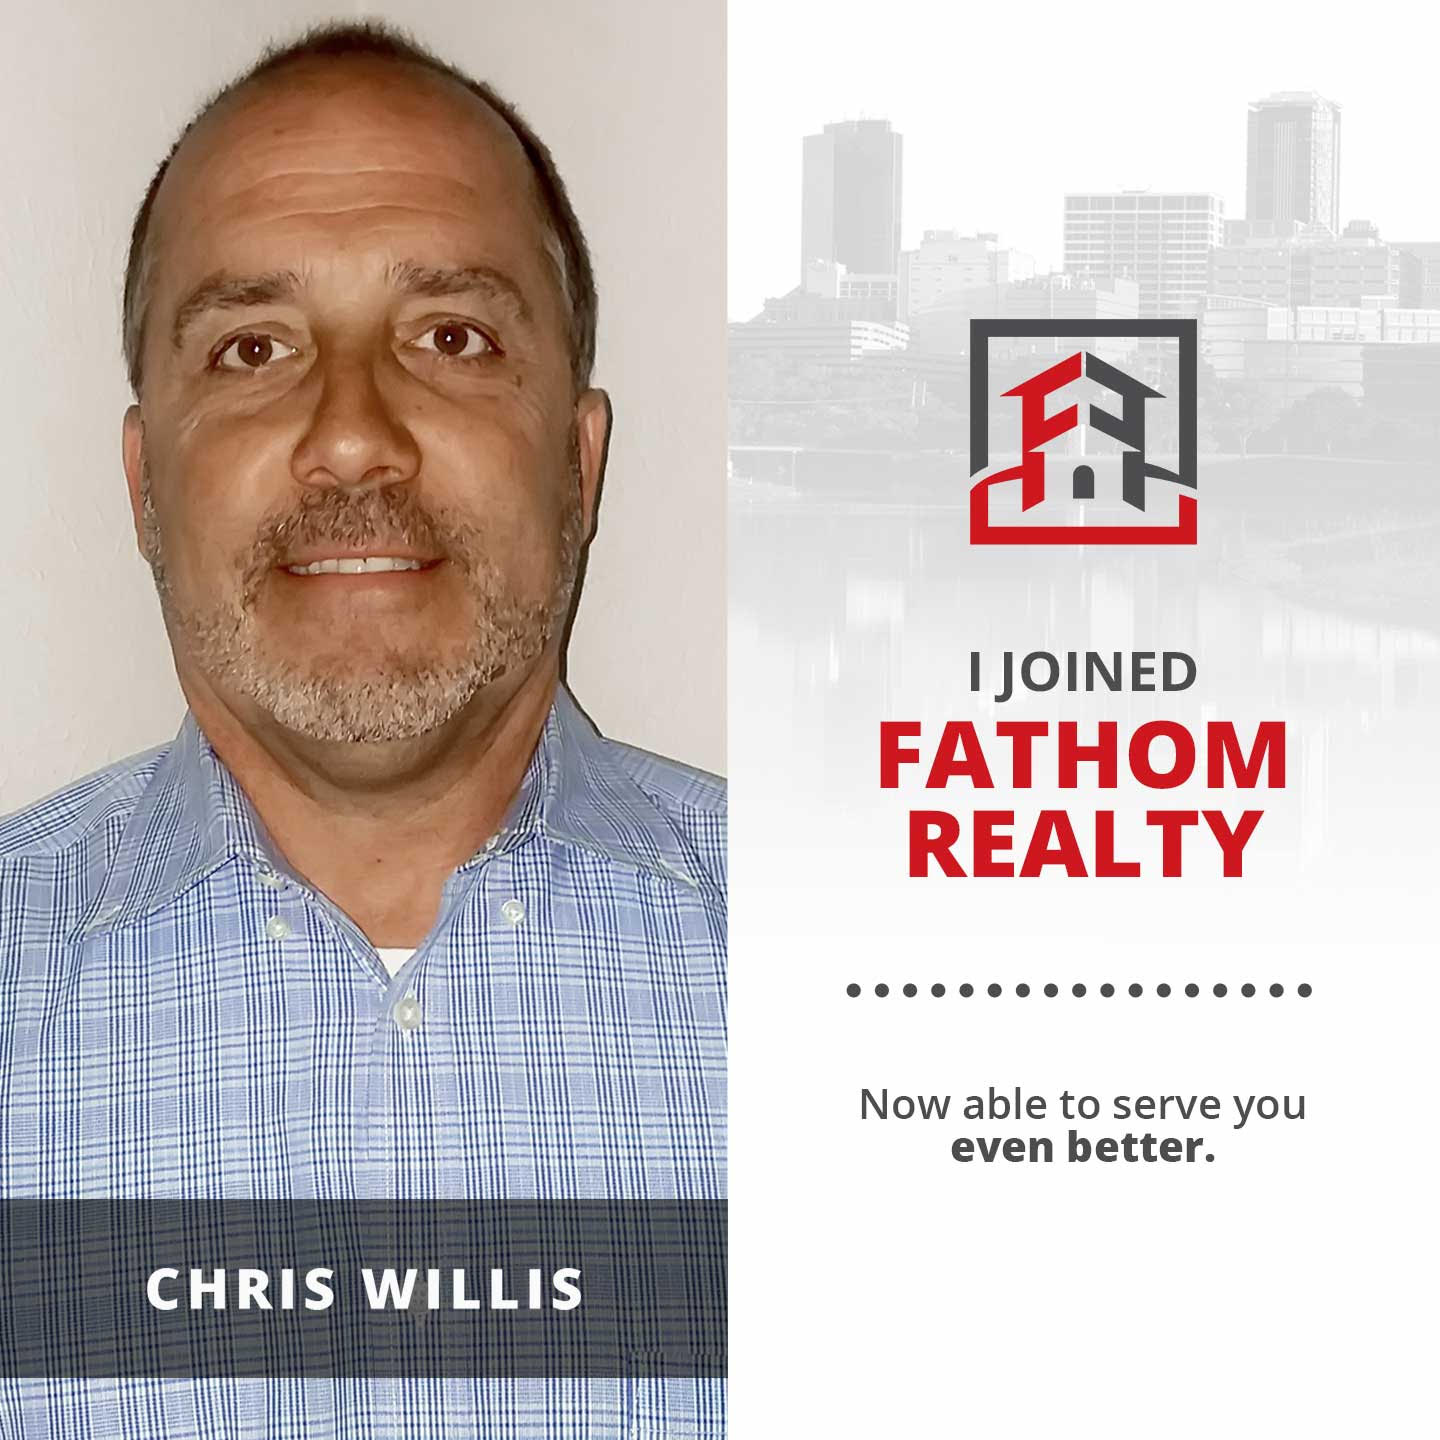 Ft. Worth, Texas real estate agents